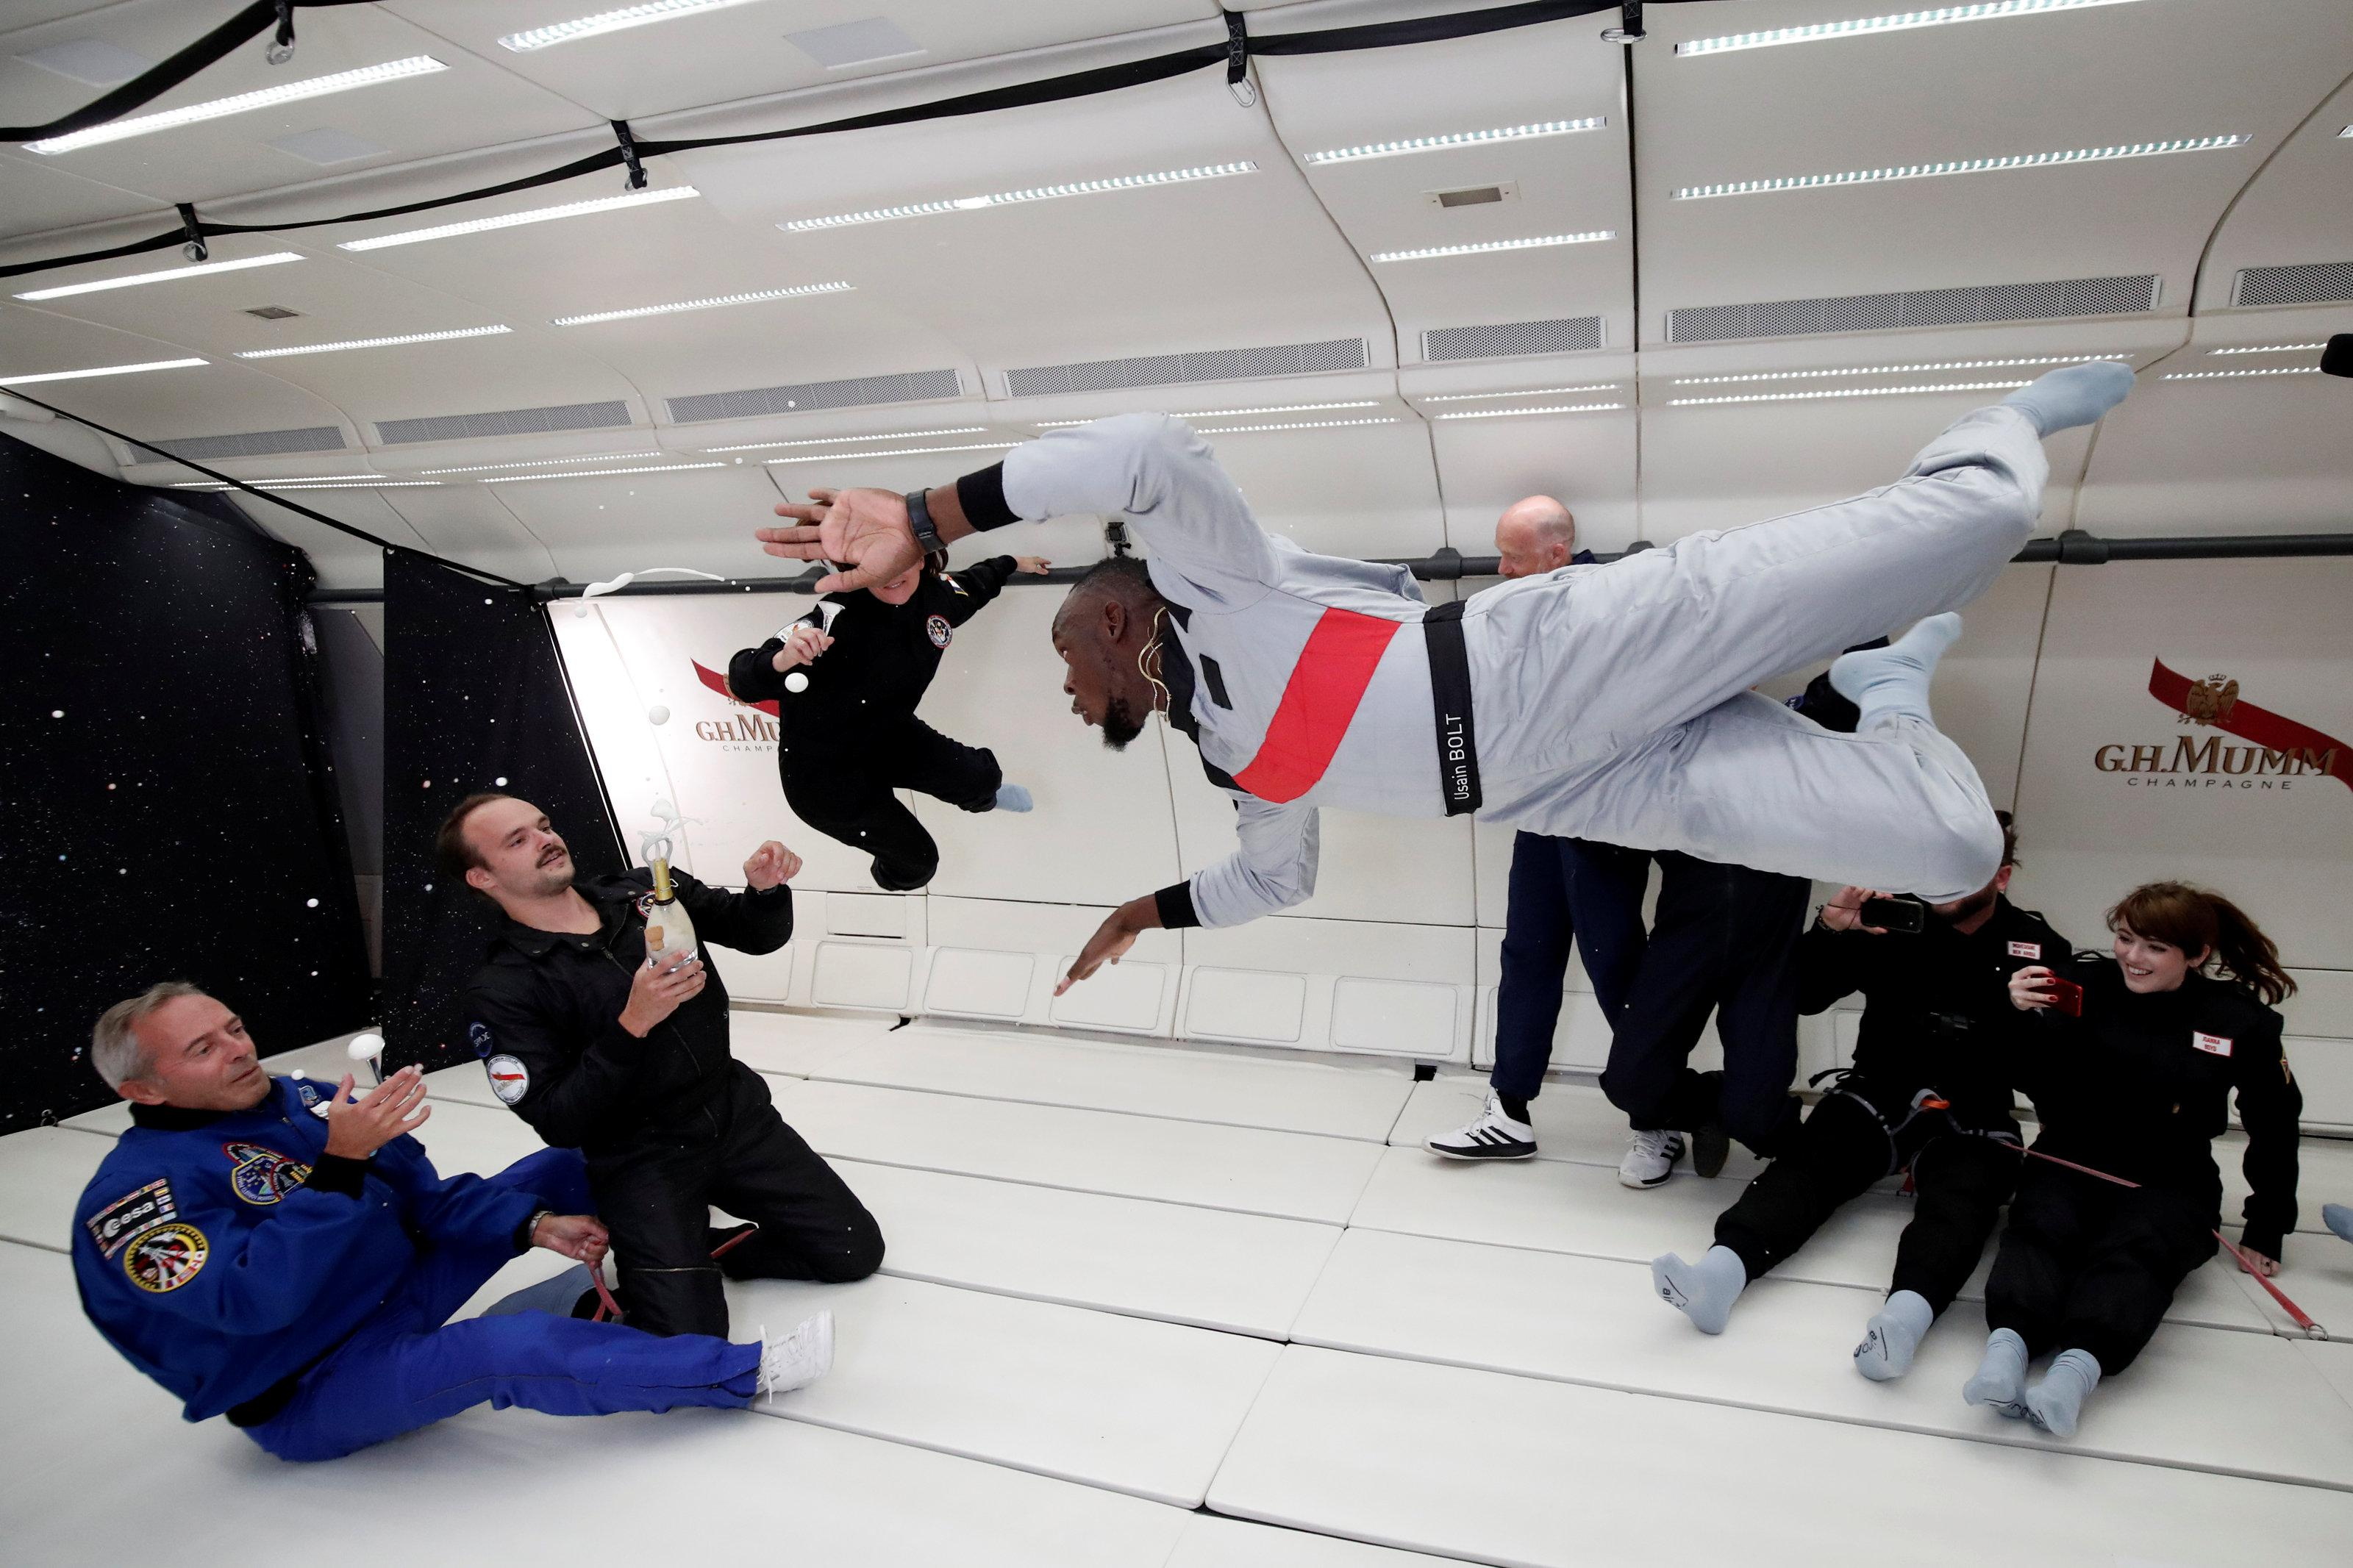 Usain Bolt is off to a flier again as he zooms around in a Moon-like environment